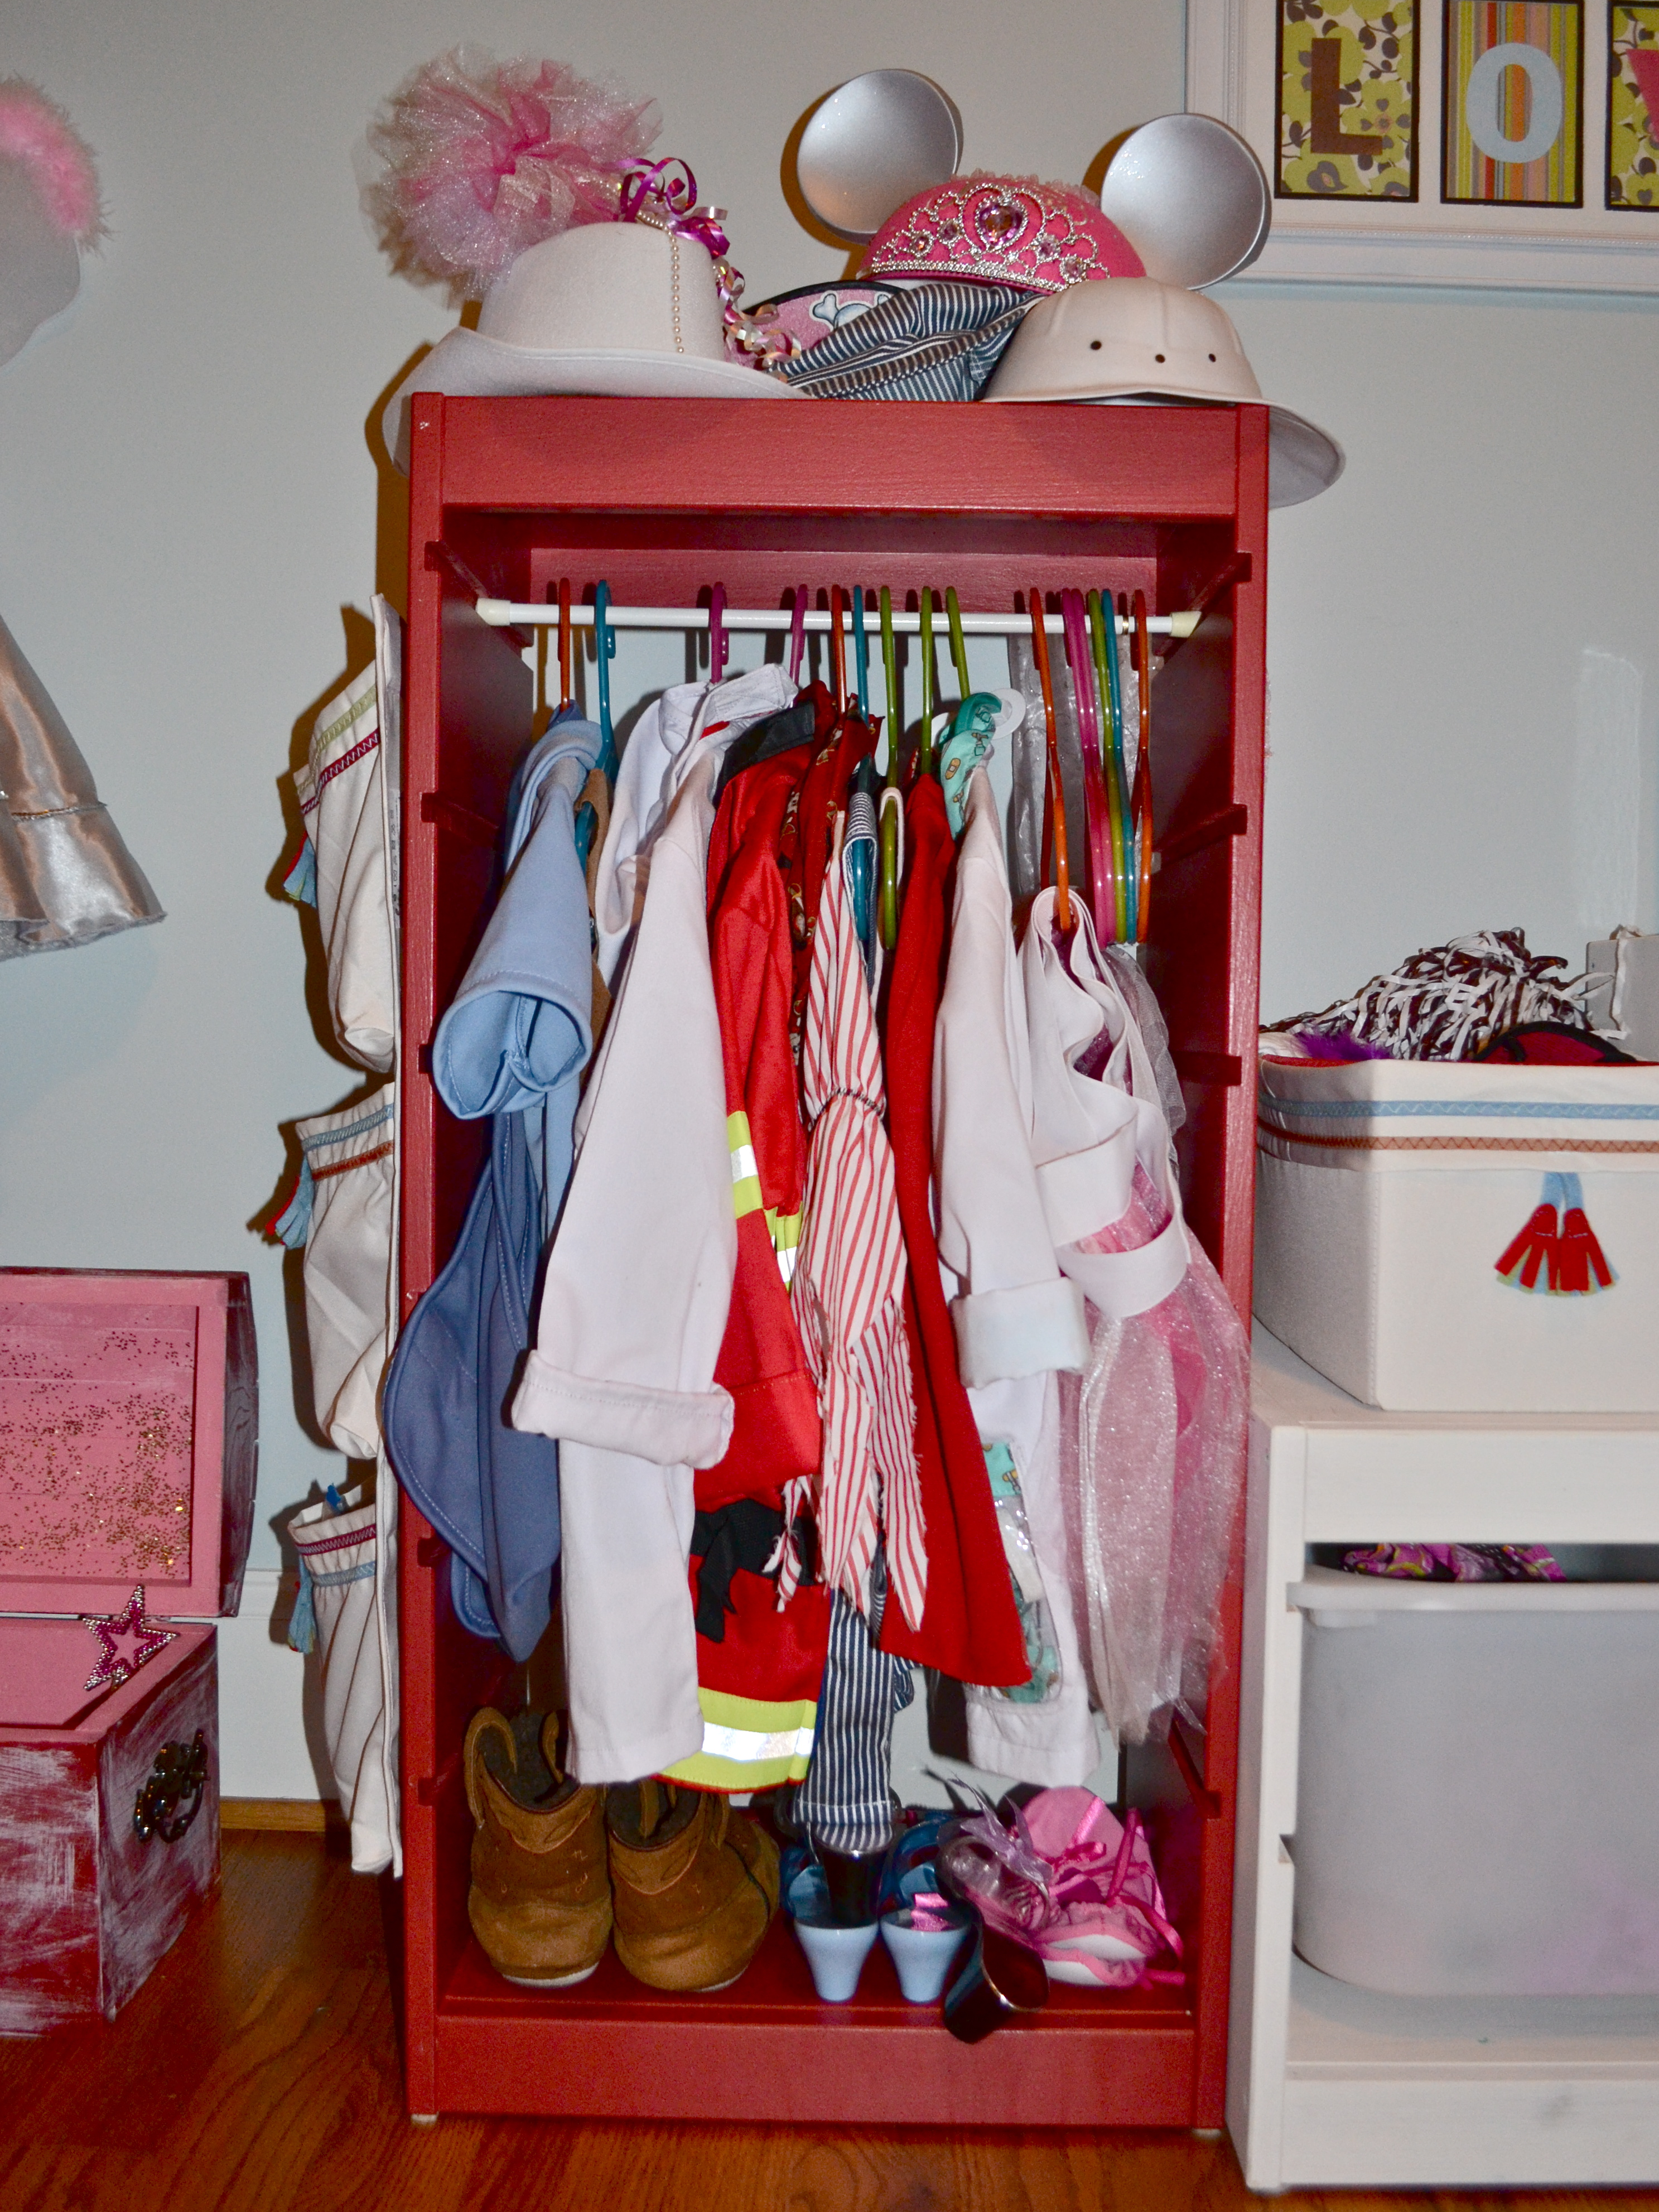 Instead Of Filling It With Bins, I Opted To Make It A Pseudo Hanging Closet  For The Less Bulky Dress Up Clothing.